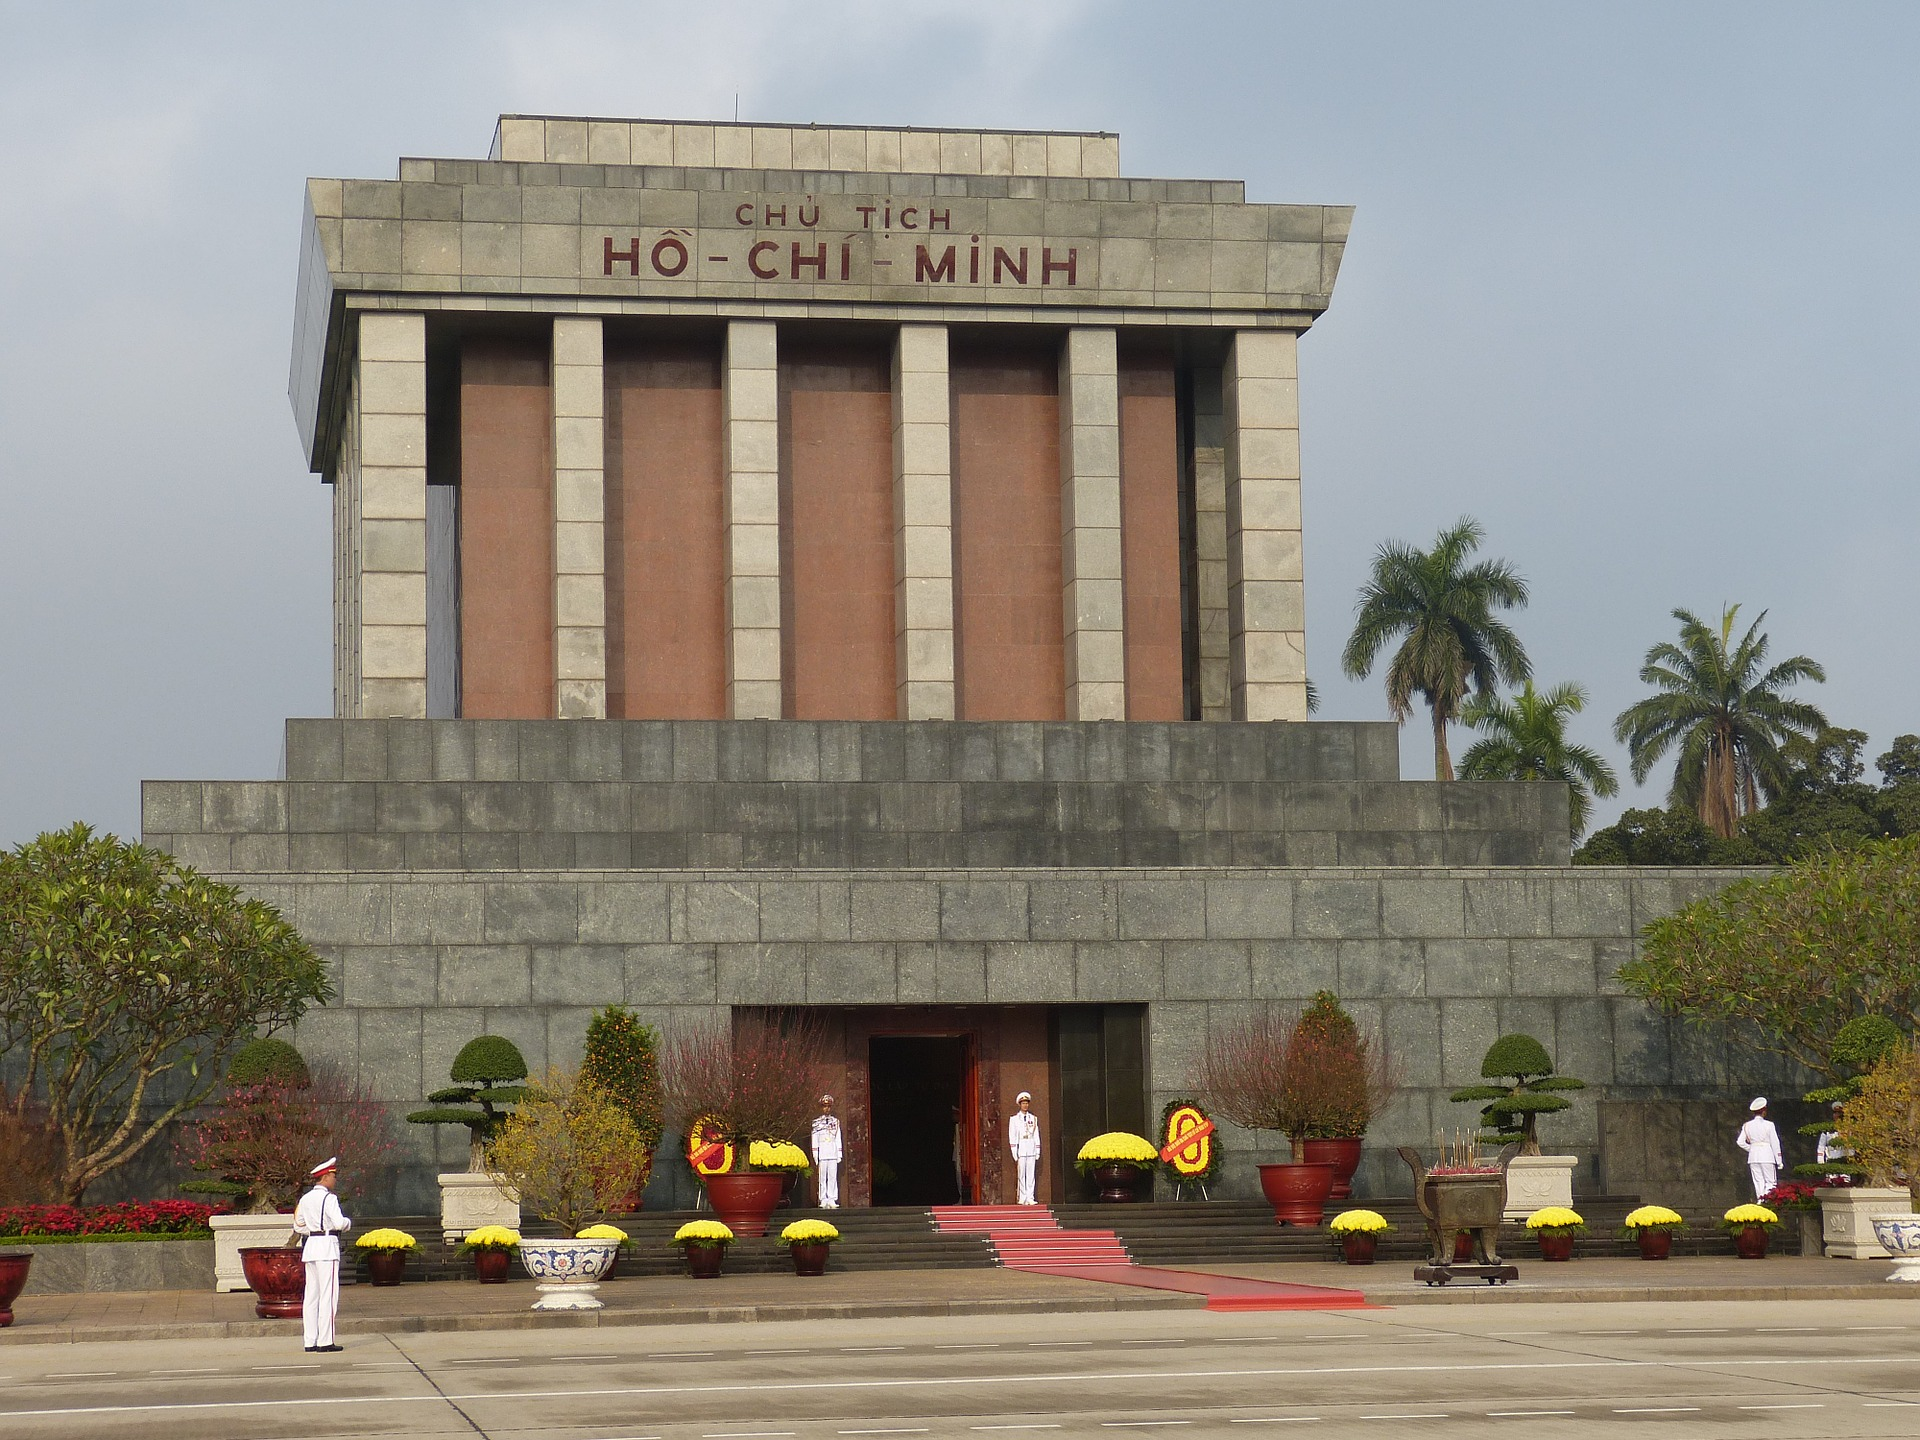 Ho Chi Minh's Mausoleum, Hanoi, Vietnam. Read this article and use it as your guide to Hà Nôi, Vietnam by an insider as it includes the best things to do in Hanoi, Vietnam, where to eat in Hanoi, where to stay in Hanoi, and Hanoi tips. #hanoi #vietnam #hanoitravel #hanoitips #hanoitraveling #hanoiguide #asiatravel #hanoifood #hanoiattractions